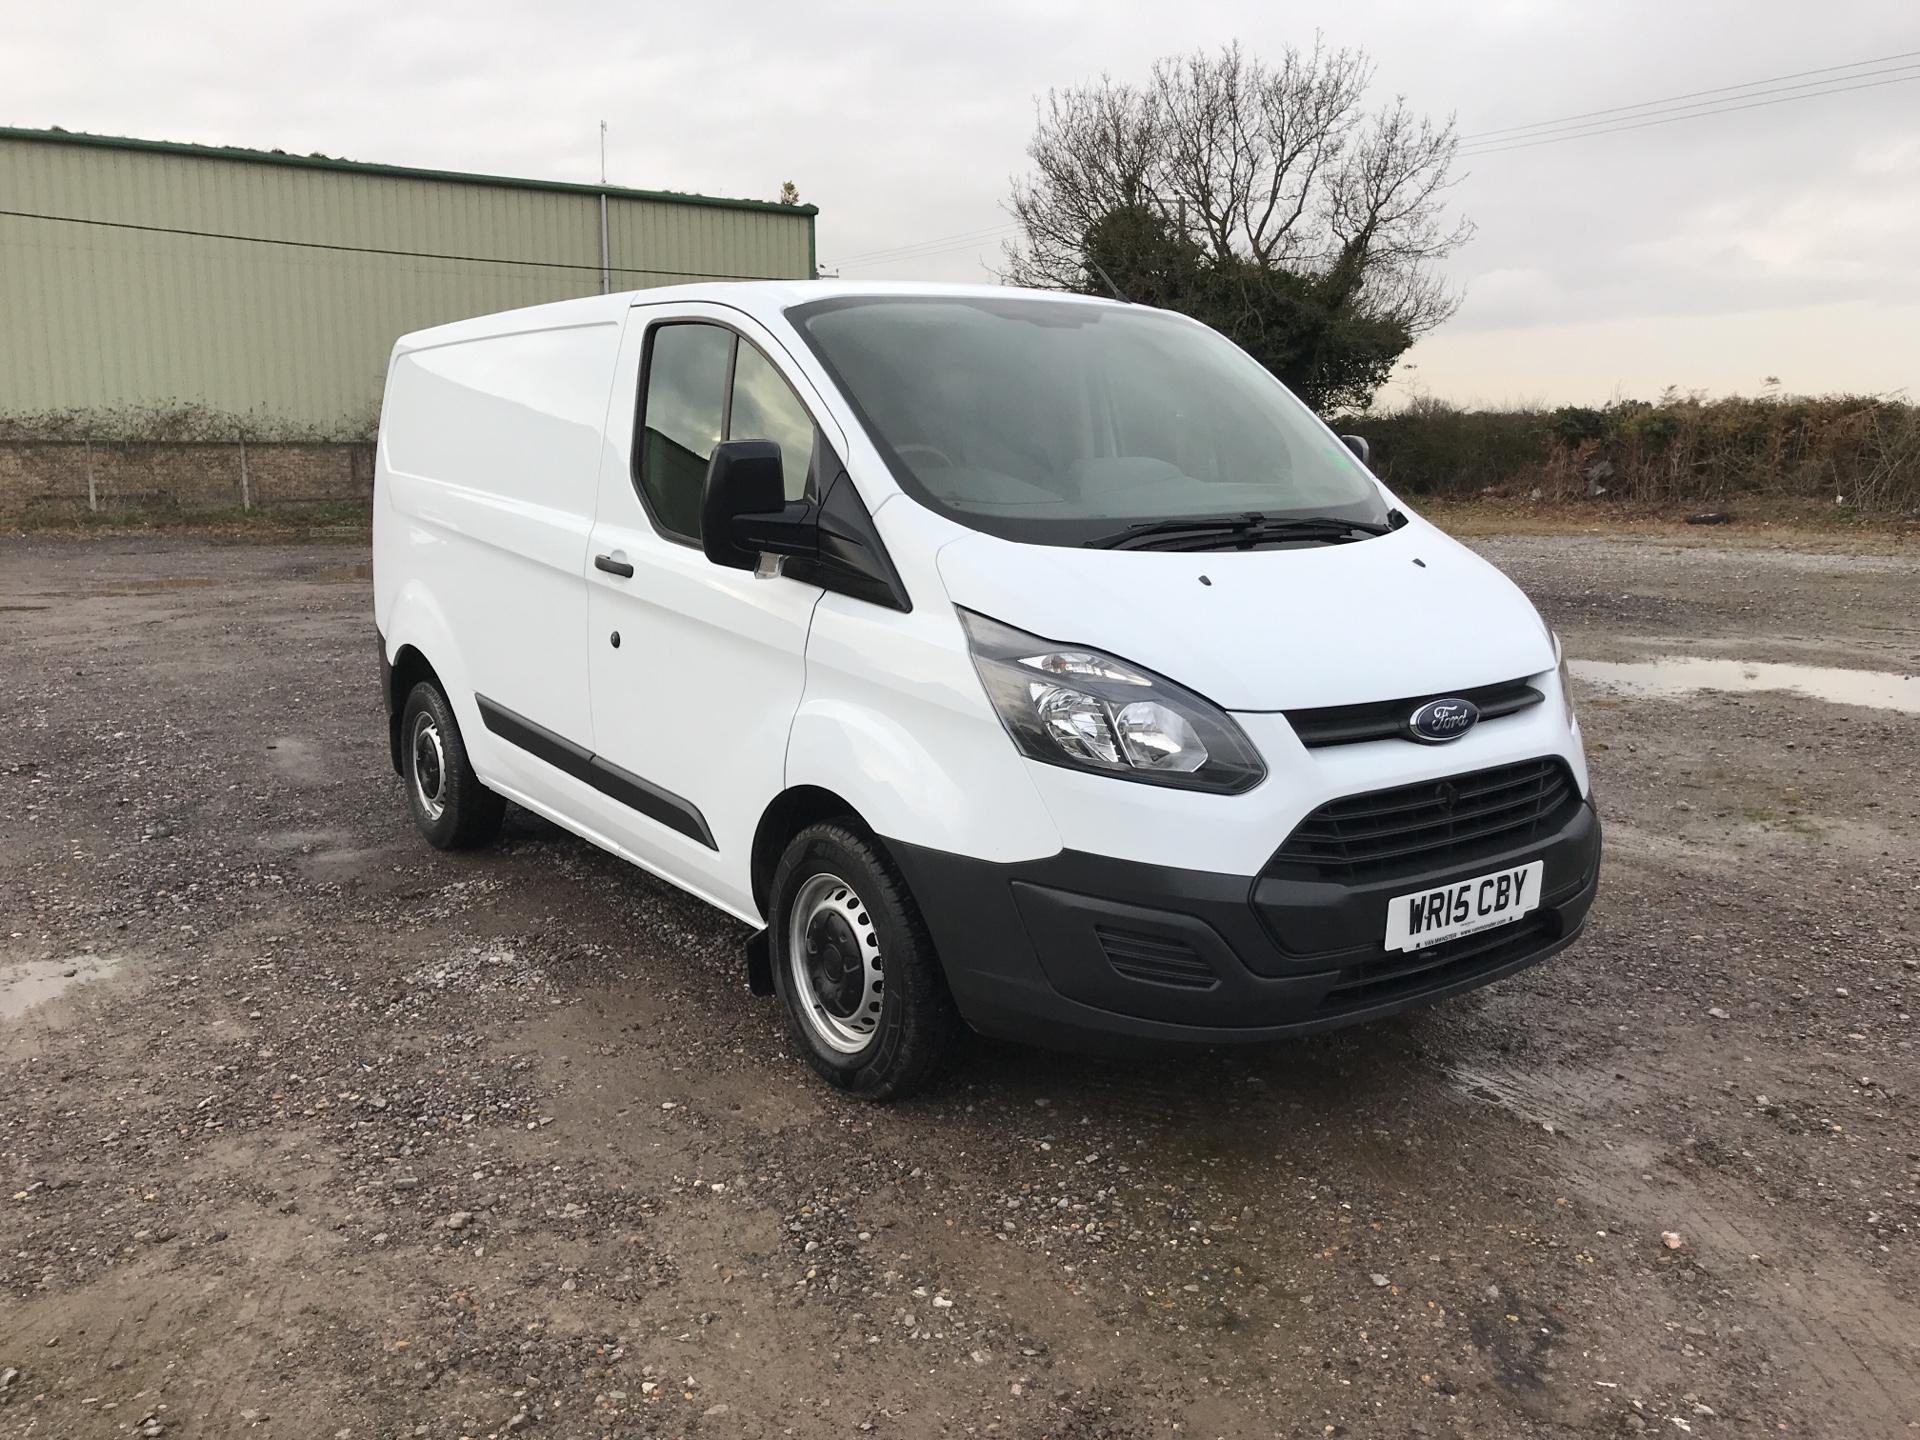 2015 Ford Transit Custom 290 L1 DIESEL FWD 2.2 TDCI 100PS LOW ROOF VAN EURO 5 (WR15CBY)